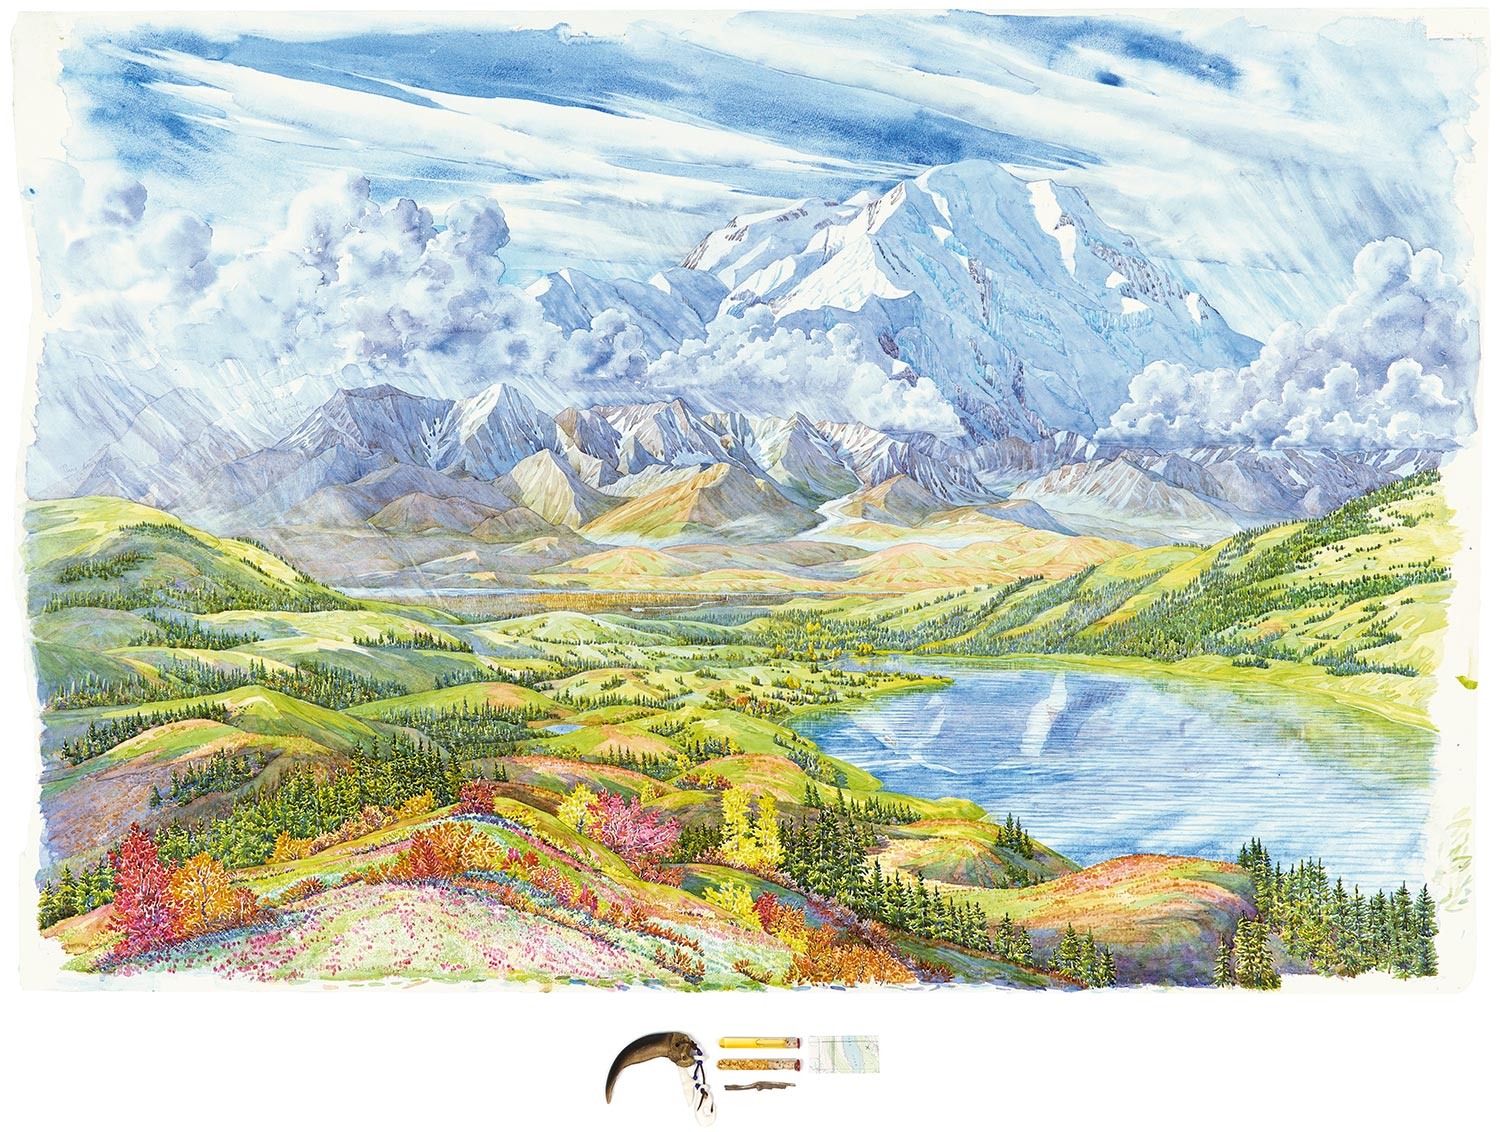 Tony Foster,  Denali and Wonder Lake Looking South from Ansel Adams Point , 2014. Watercolor and graphite on paper, acrylic, bone, leather, glass beads, glass tubes, oil, gold, cork, wax, wood, map. 36 x 54 in. | 3 1/2 x 10 in. Photo by Trevor Burrows Photography. Courtesy of Foster Art & Wilderness Foundation.